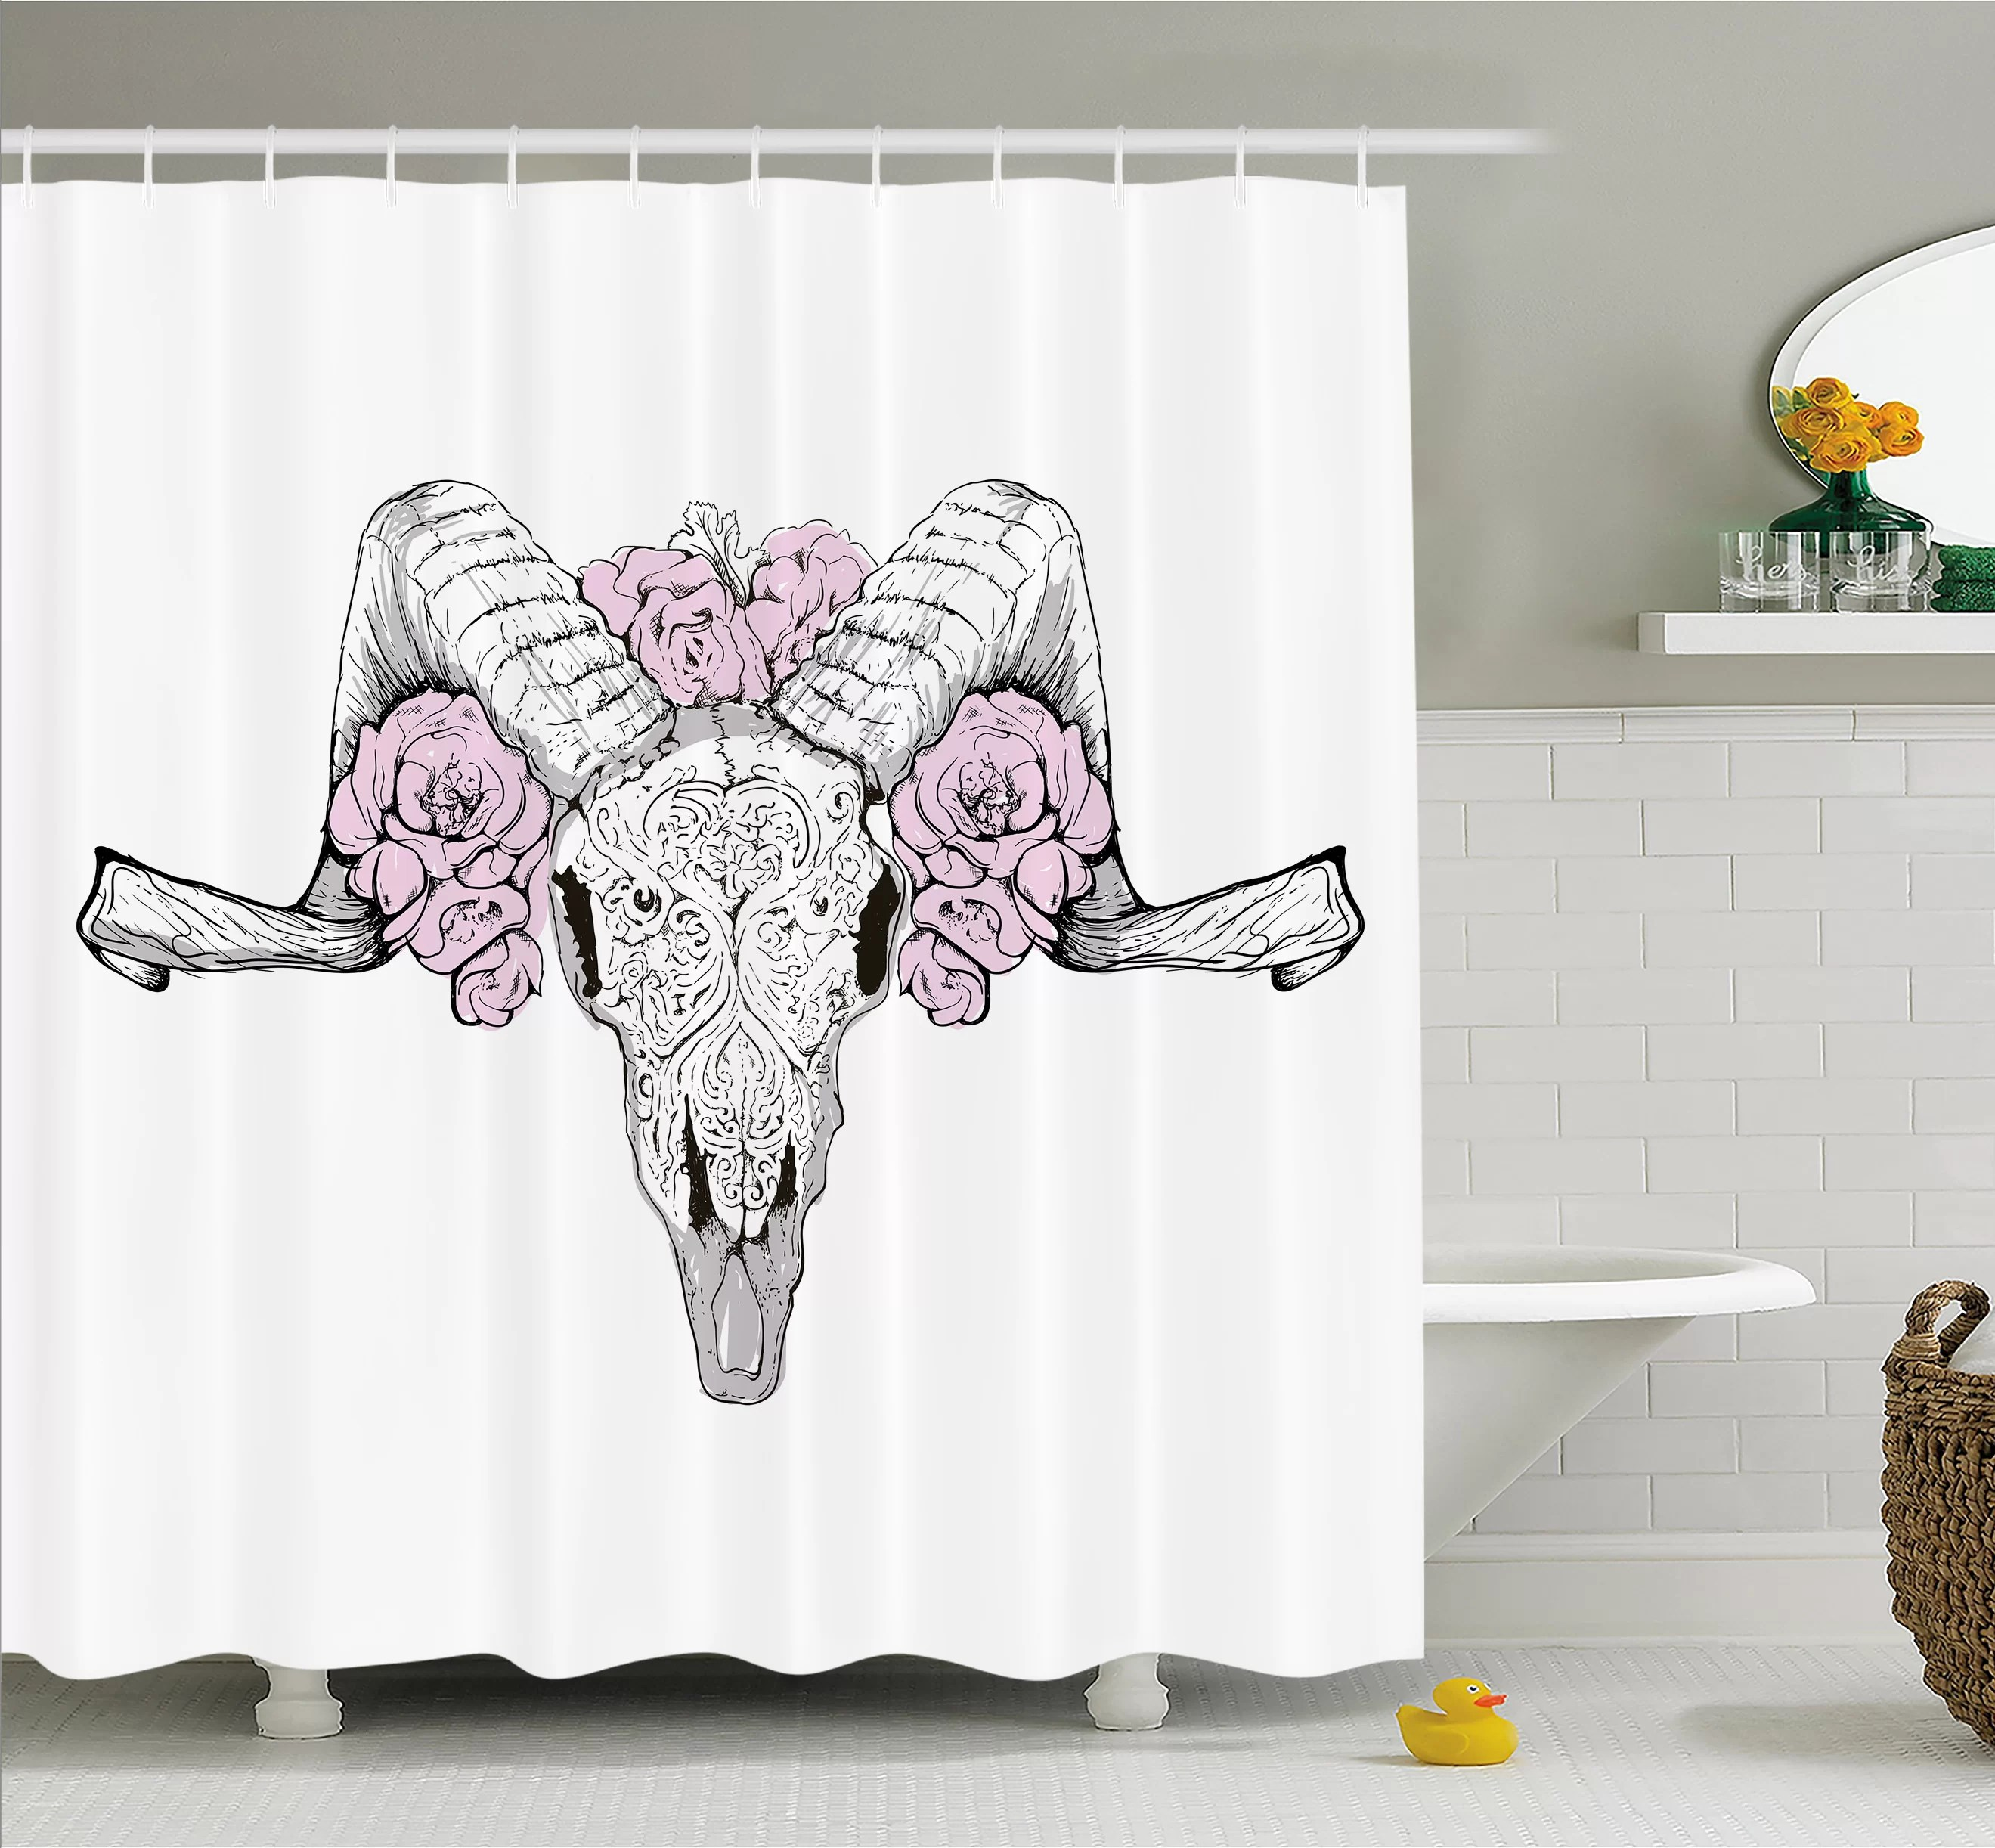 Kokopelli Shower Curtain Skull Bones Of A Lamb With Rose Flowers Spiritual Oriental Creepy Boho Graphic Shower Curtain Set